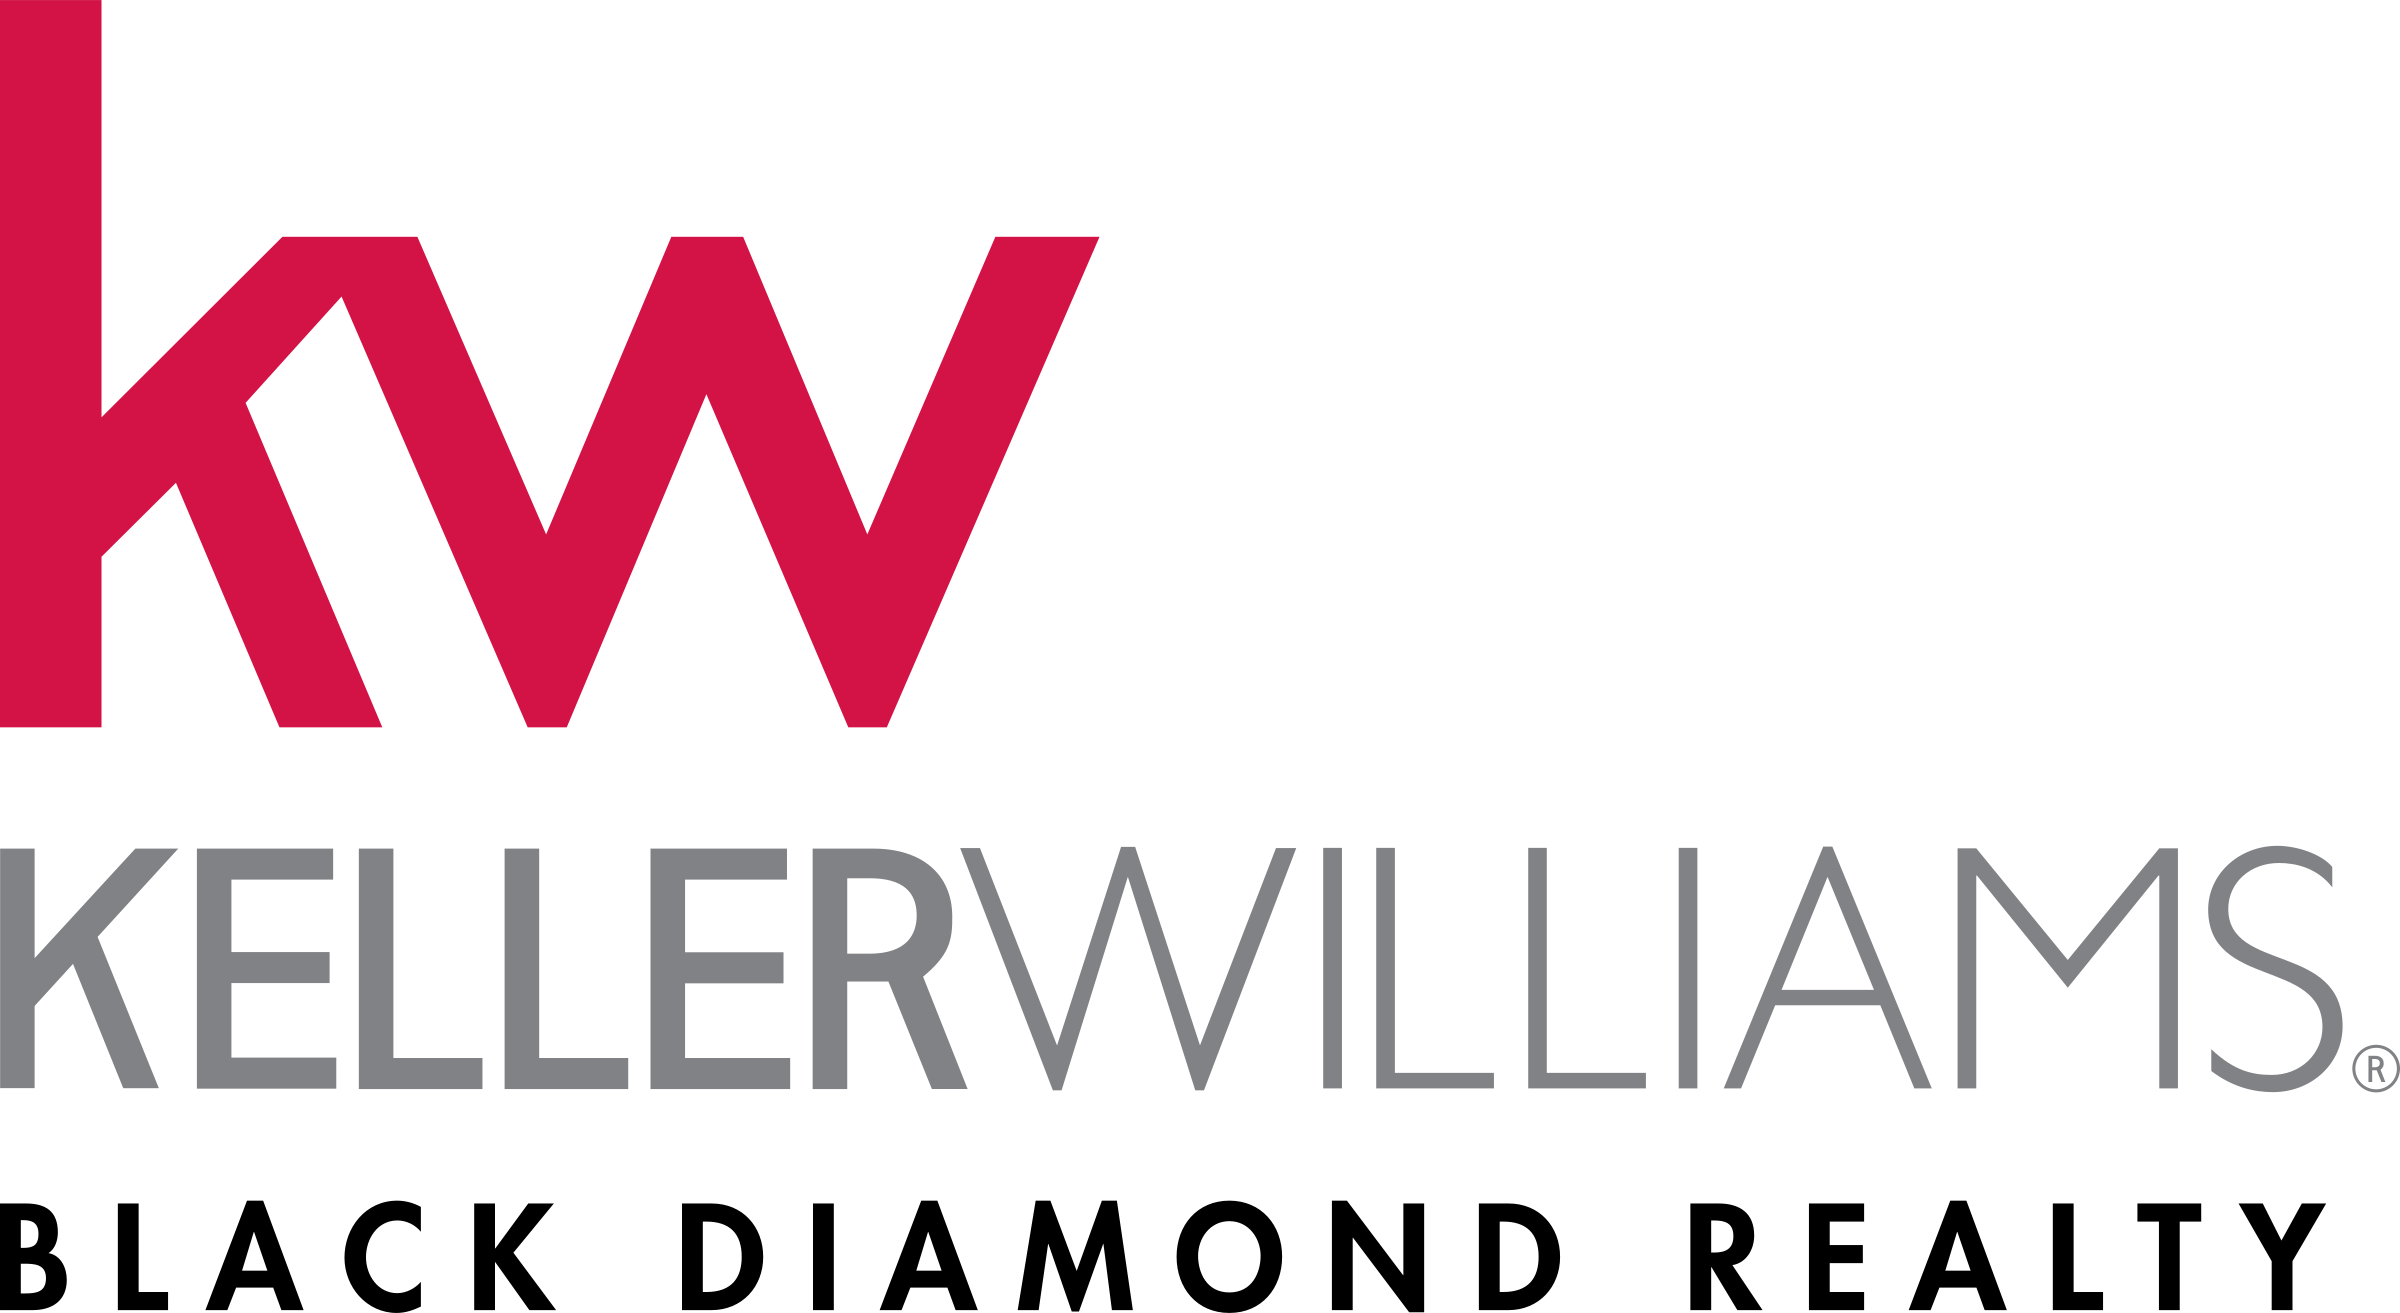 Keller williams log png. Ketchup splat image next